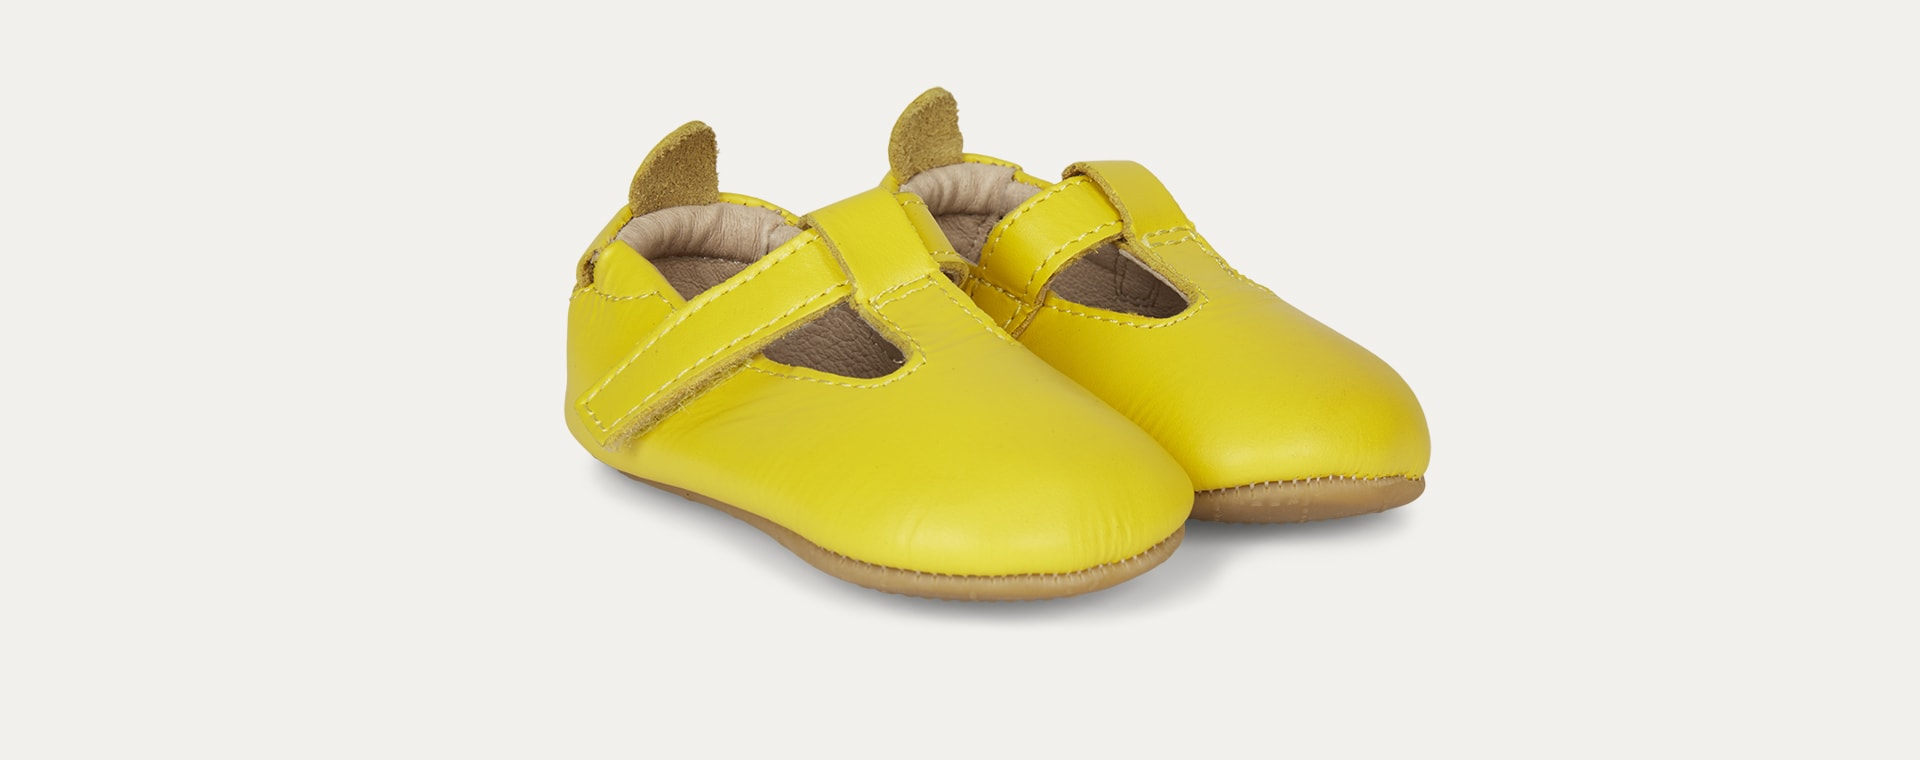 Sunflower old soles Omhe- Bub Soft Sole Shoe